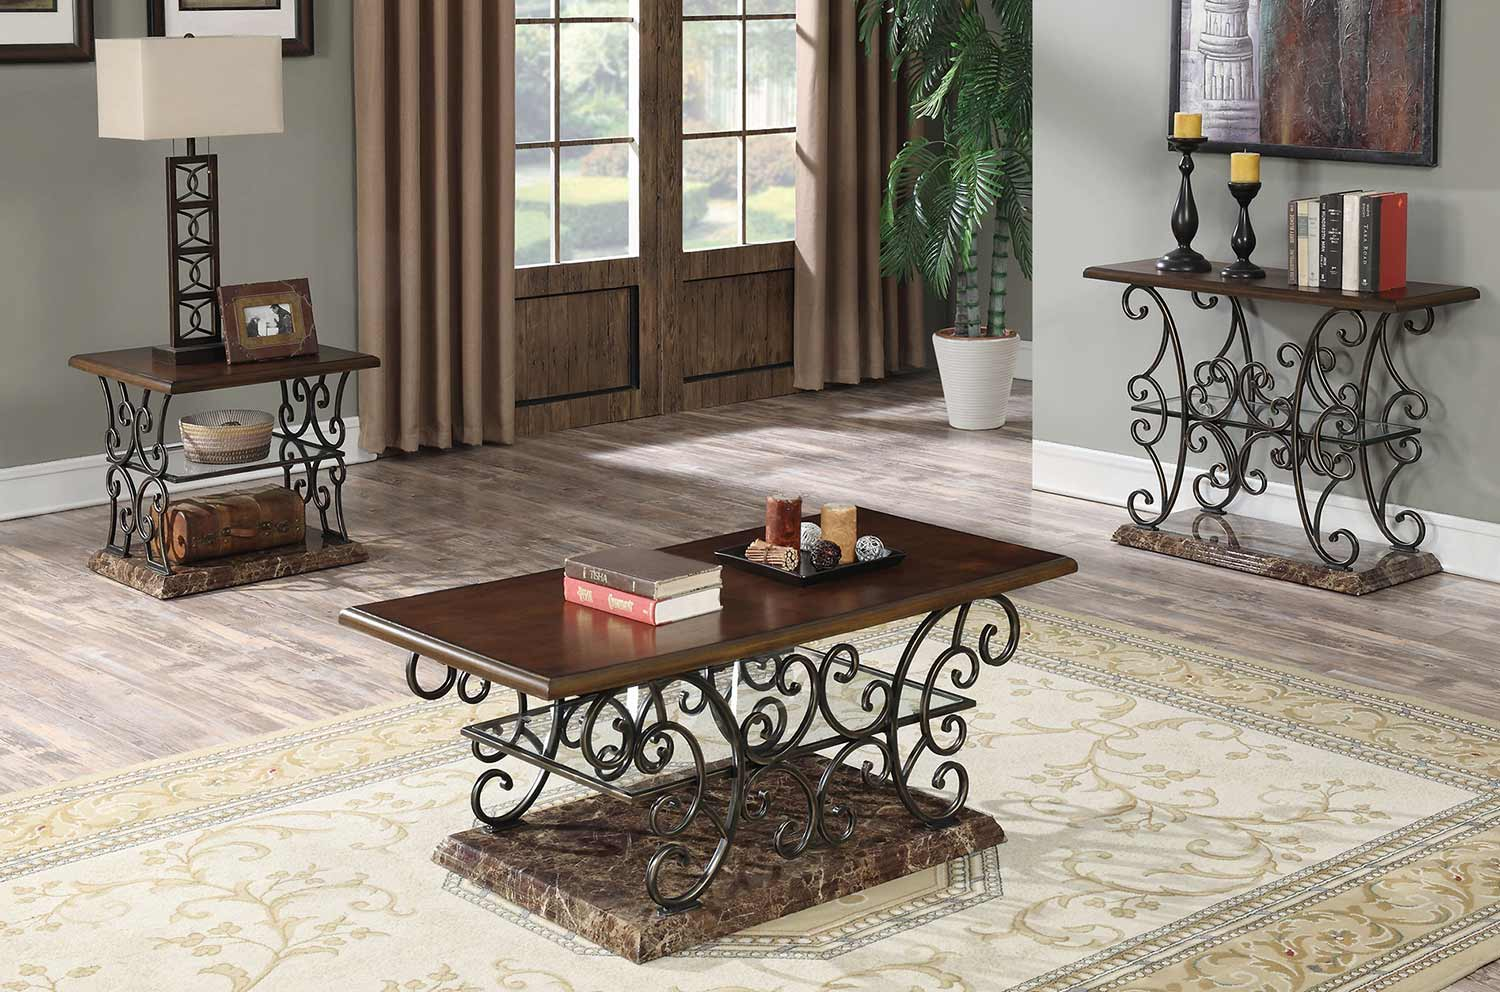 Coaster 705118 Occasional/Coffee Table Set - Merlot/Gold Brushed ...